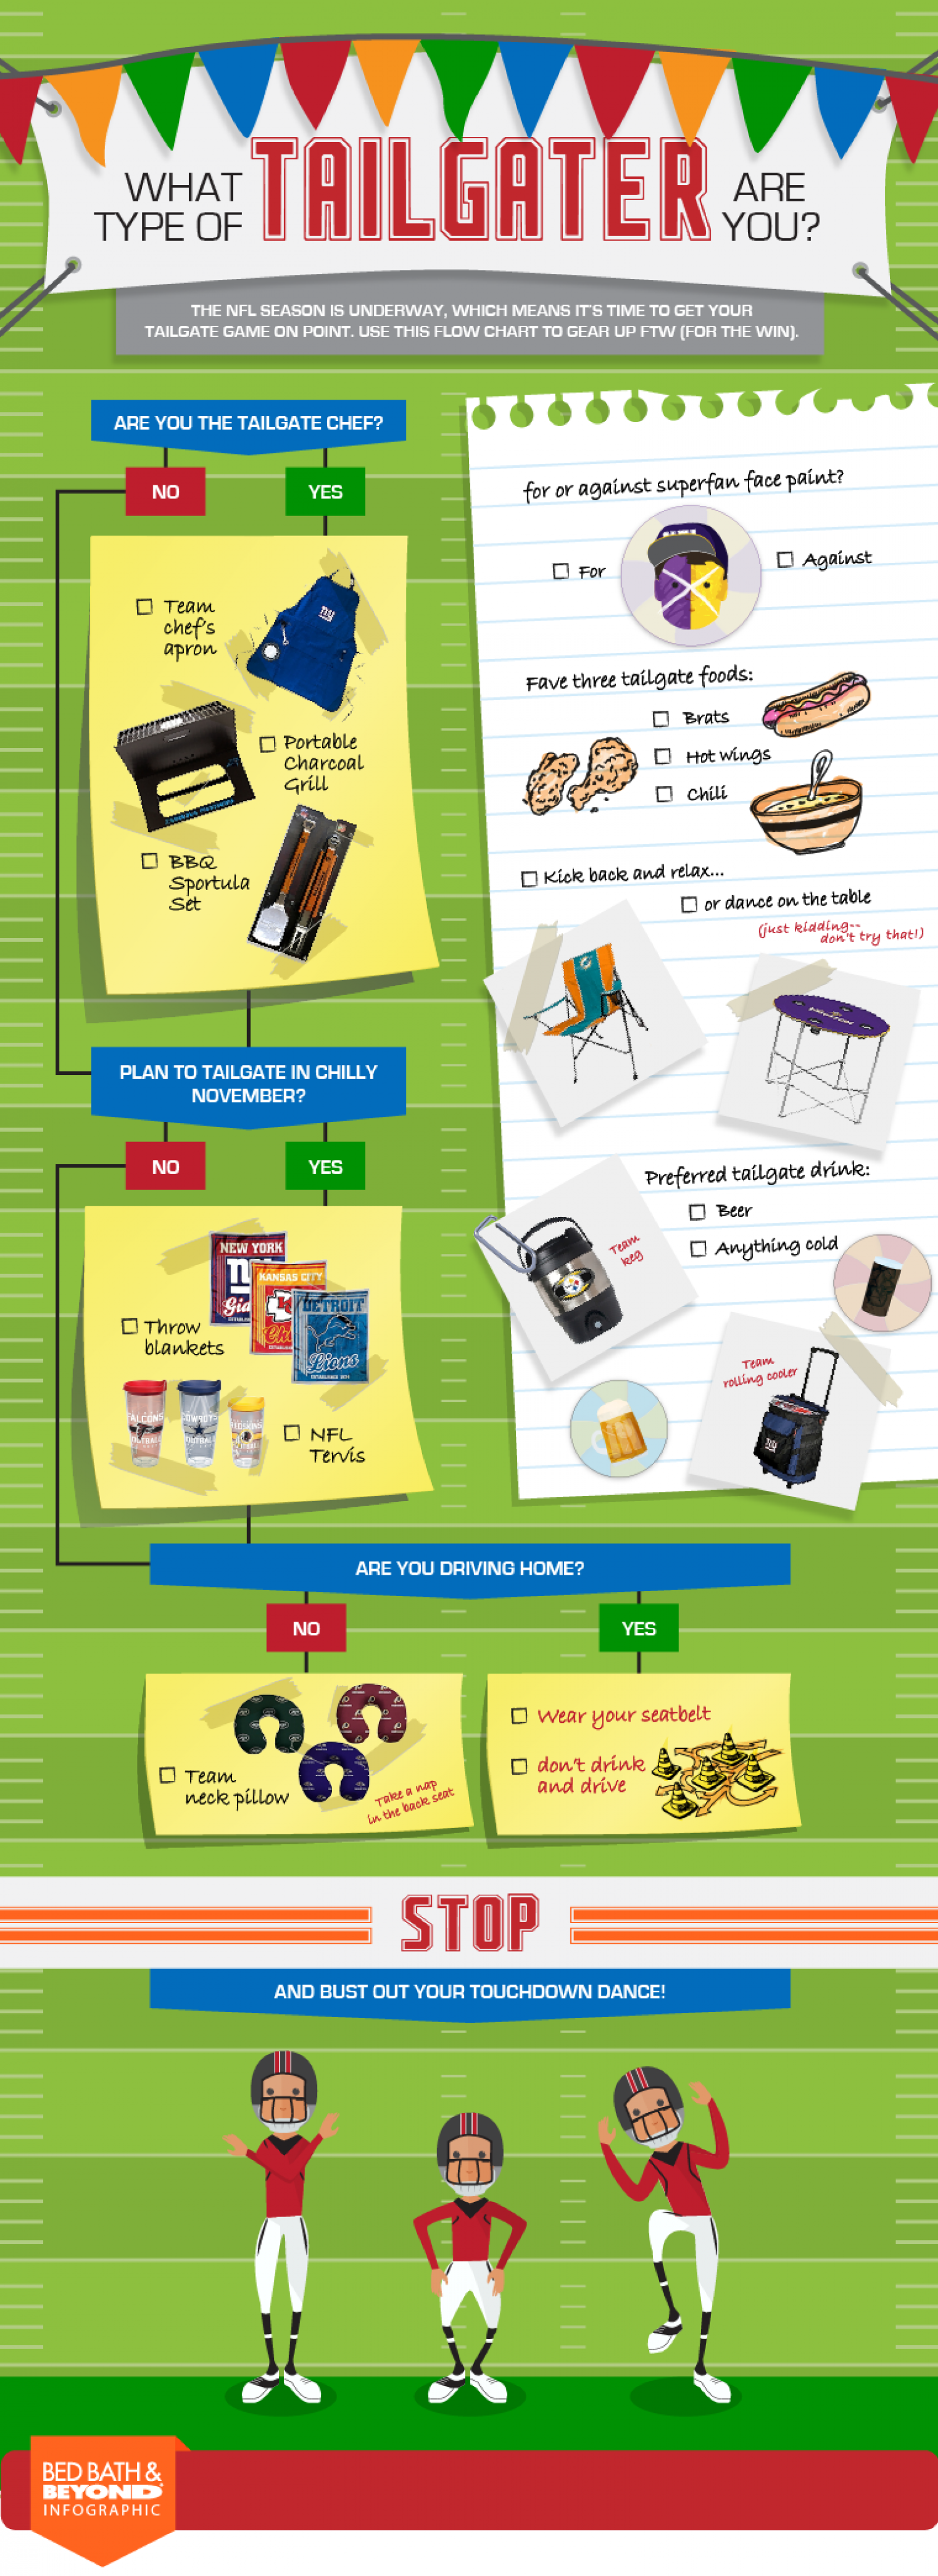 What type of Tailgater are you? Infographic